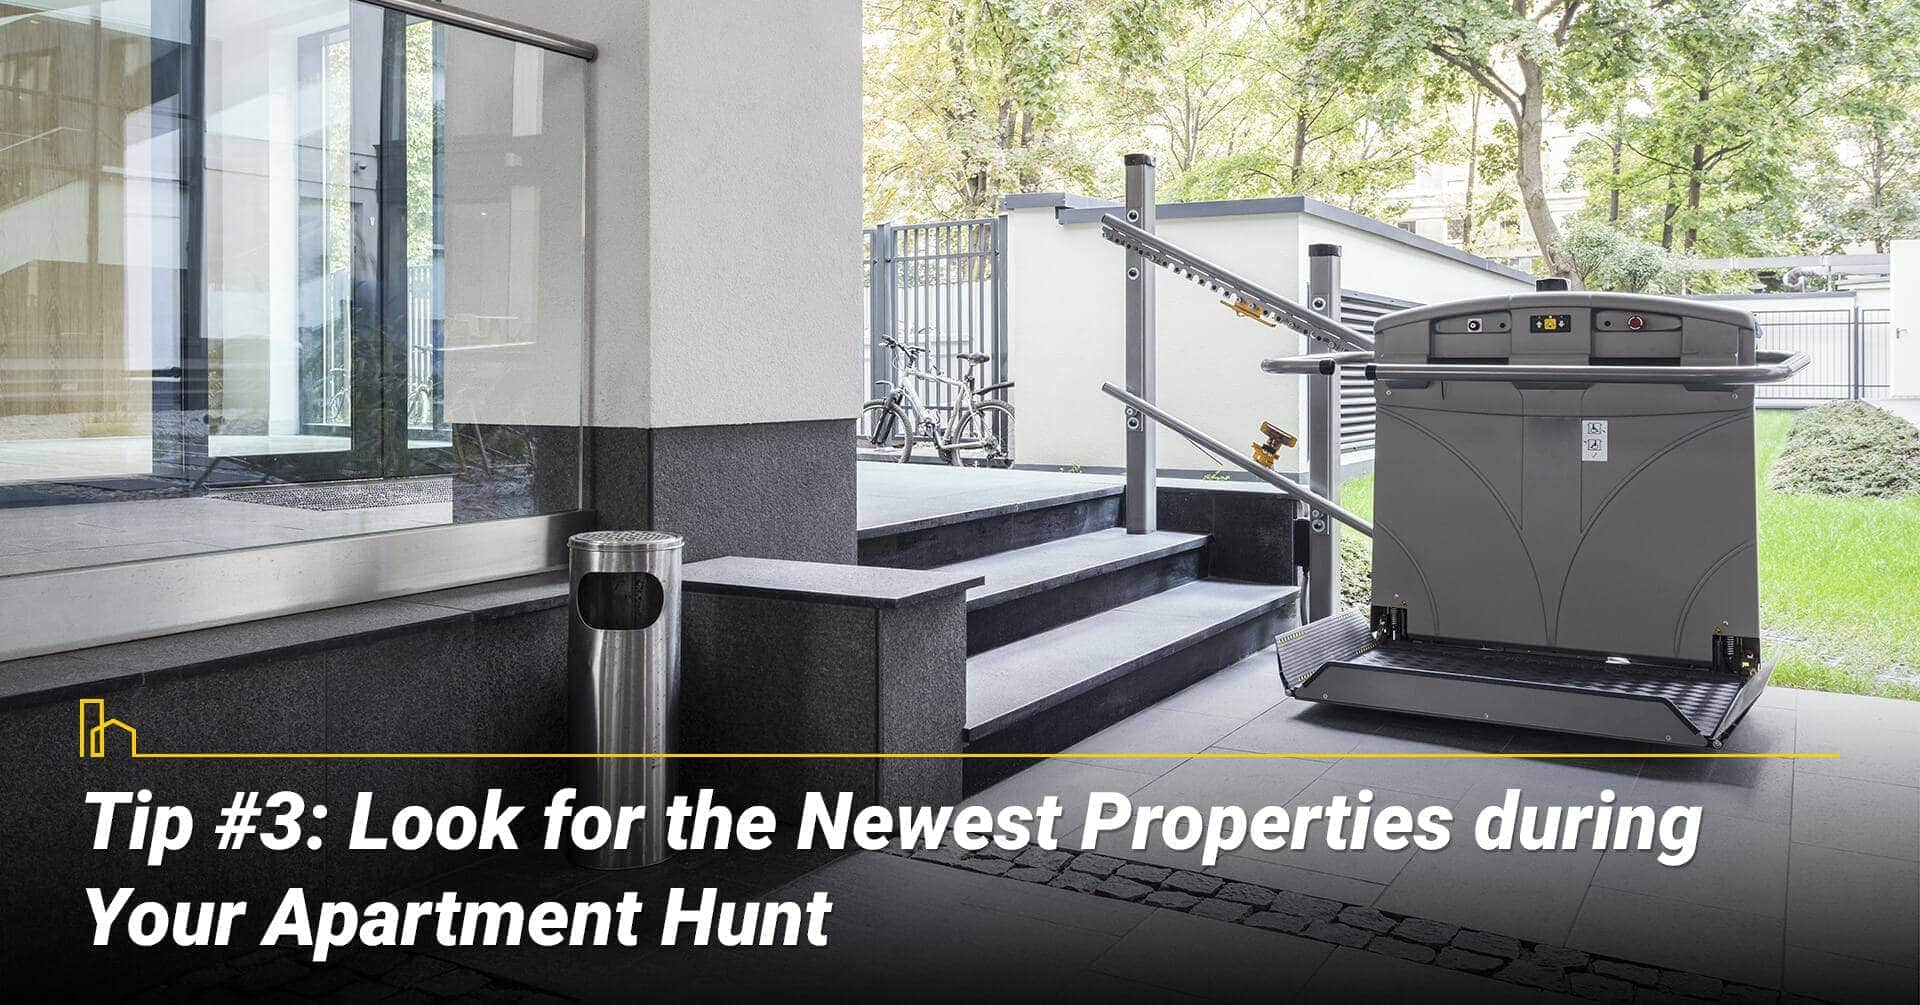 Tip #3: Look for the Newest Properties during Your Apartment Hunt, look for new properties